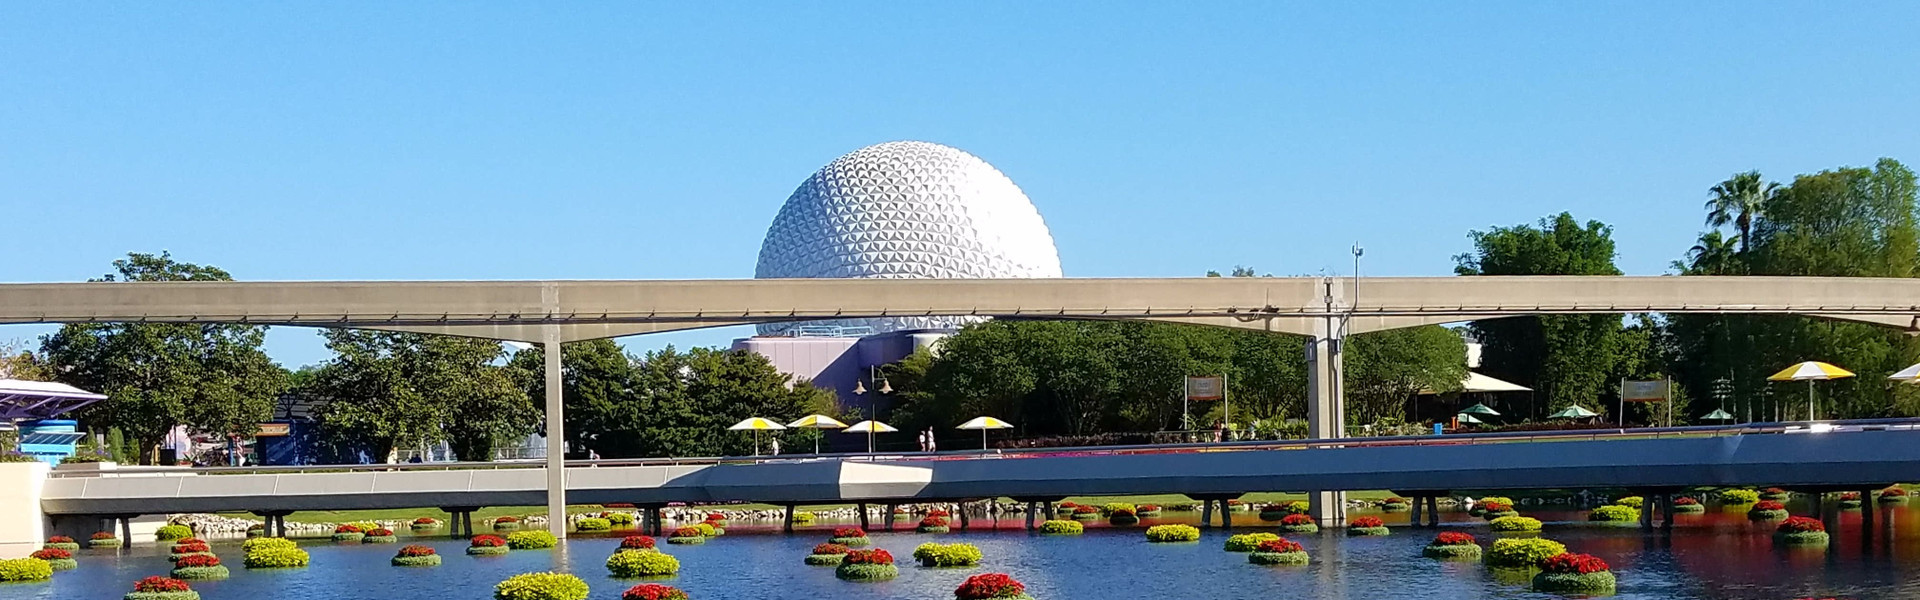 Hotel For Epcot International Food & Wine Festival - Epcot